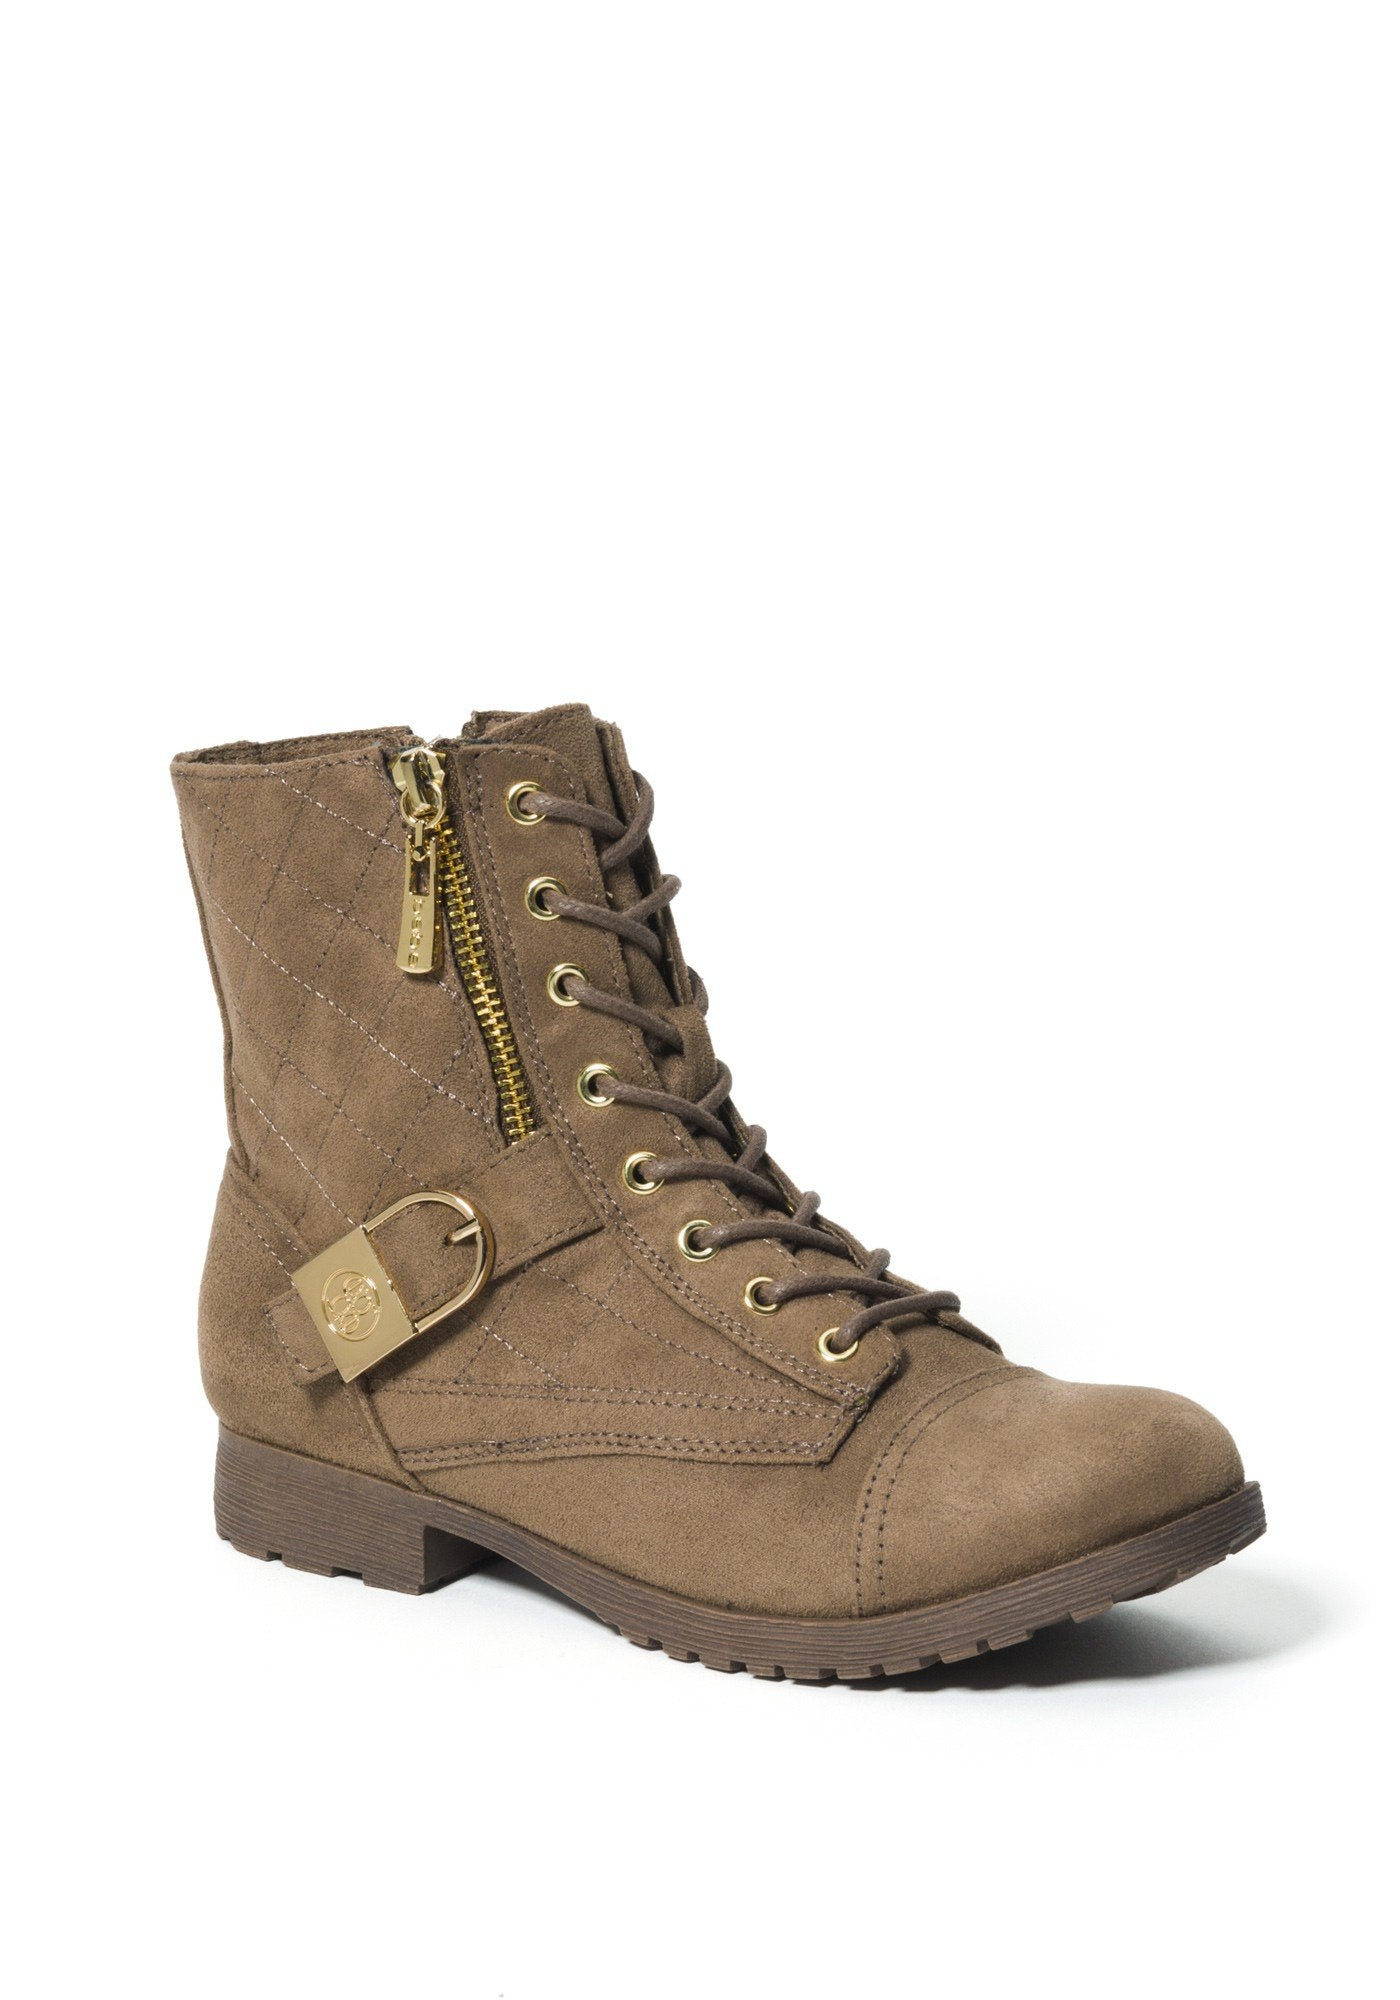 Bebe Women's Wandell Logo Ankle Boots, Size 6 in Taupe Suede